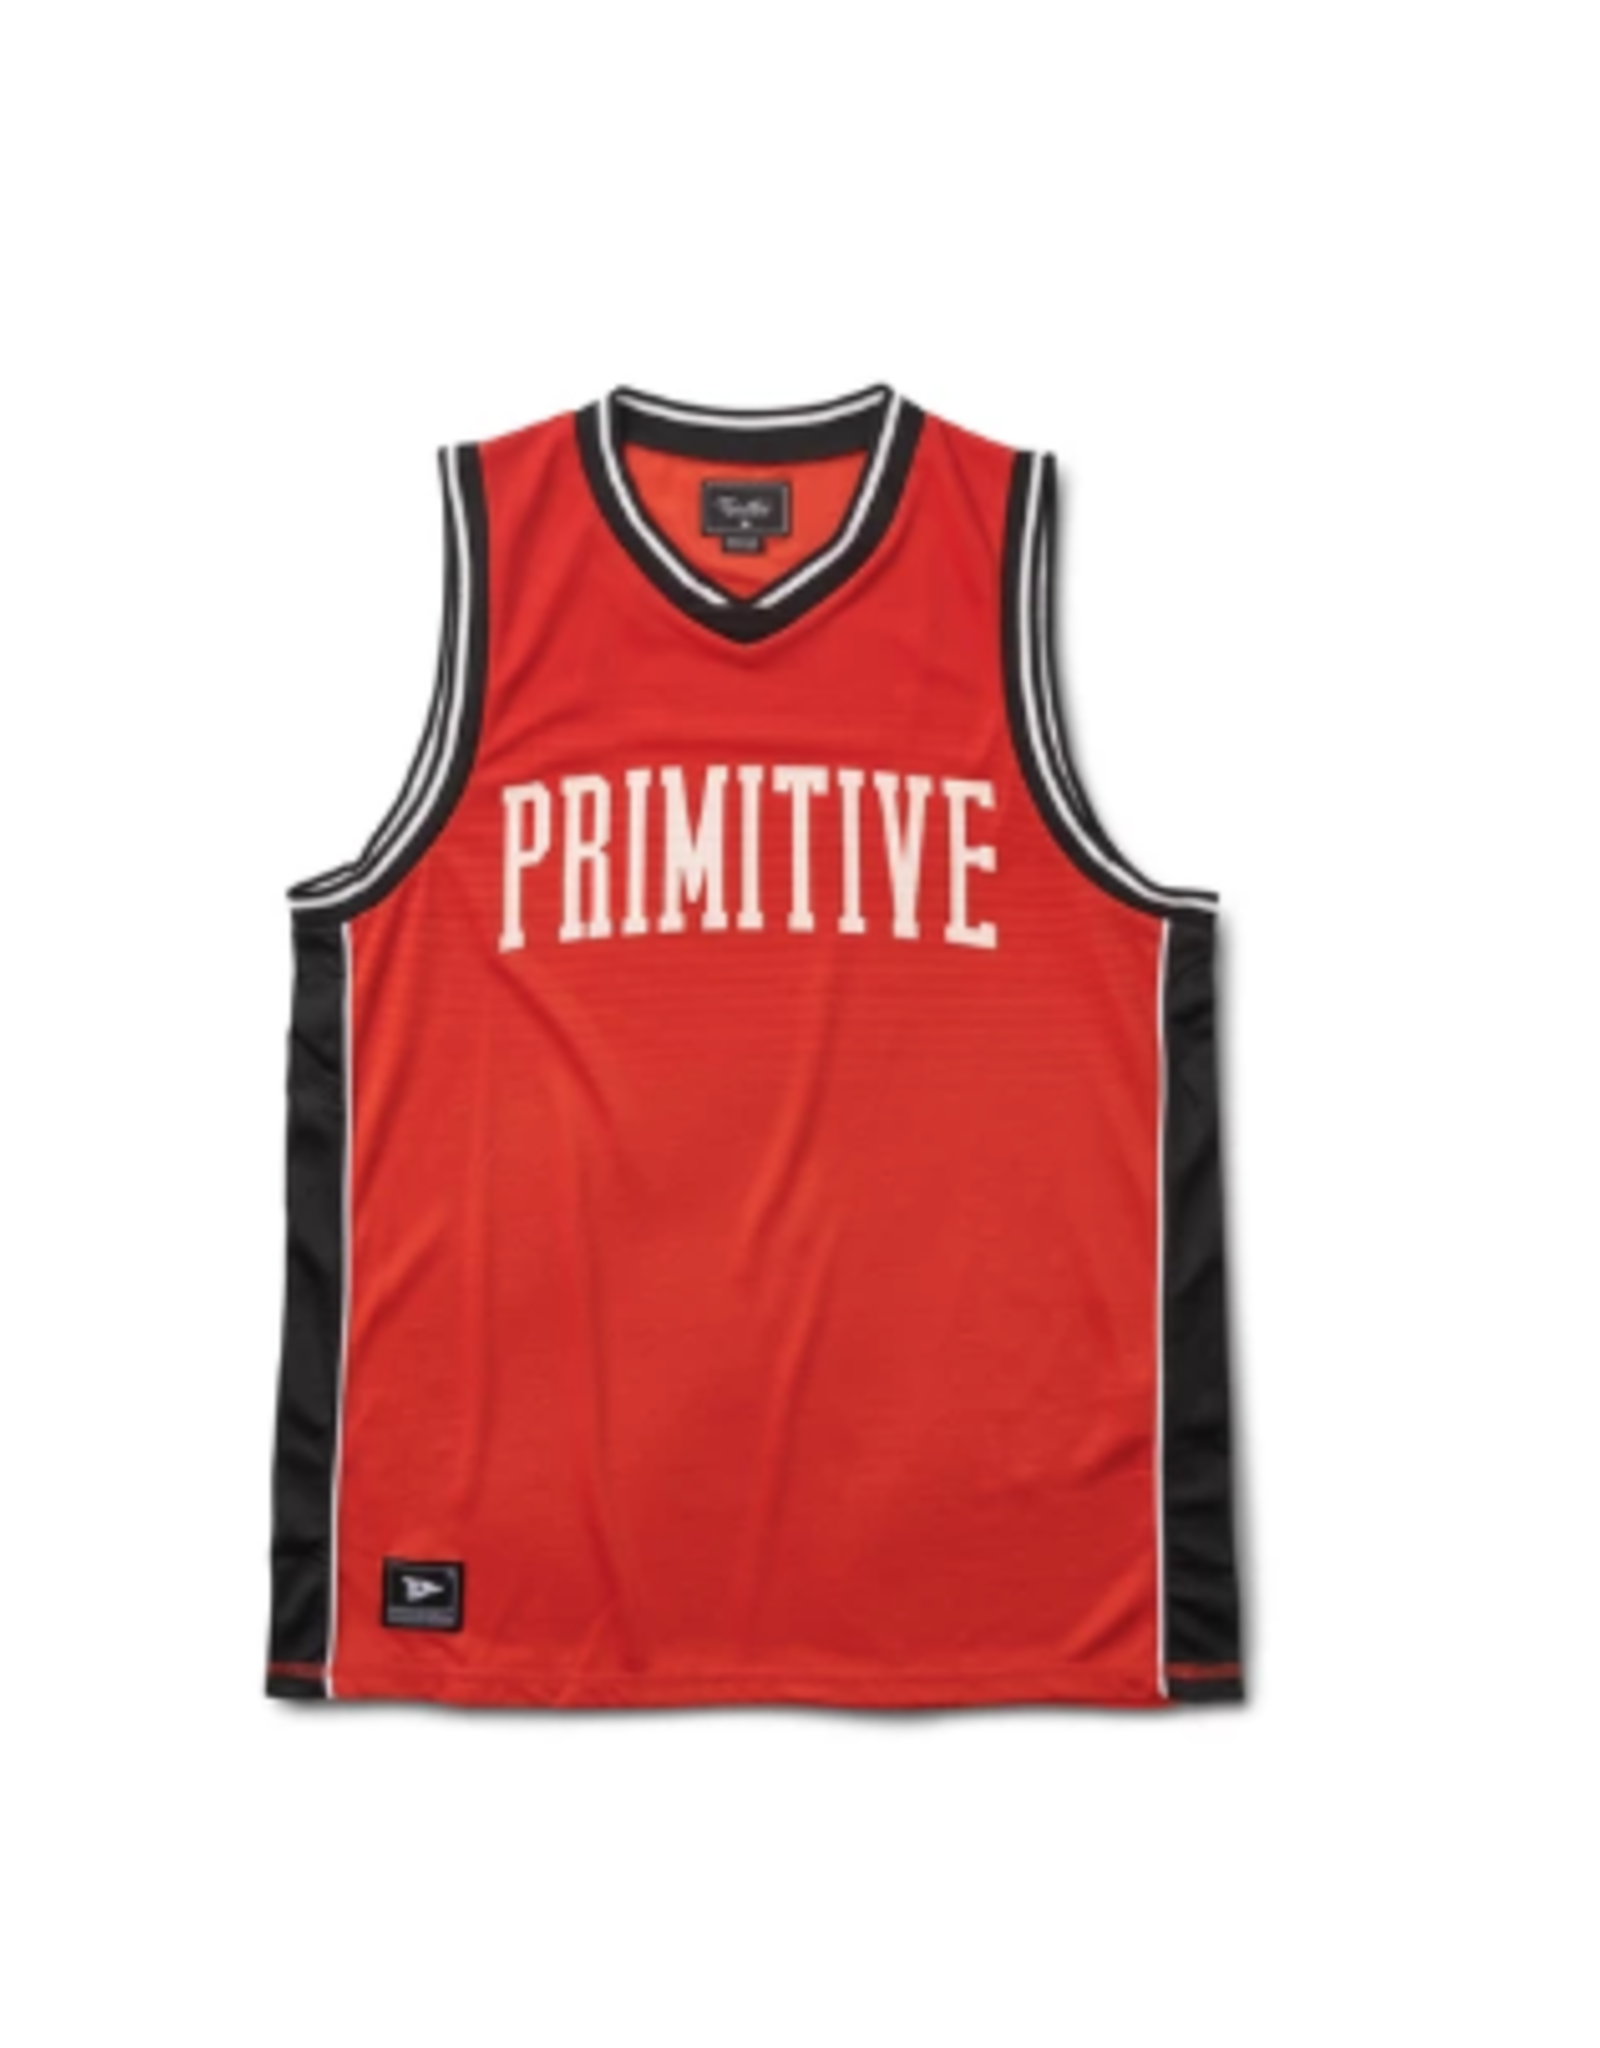 SALE Primitive Champs Basketball Jersey